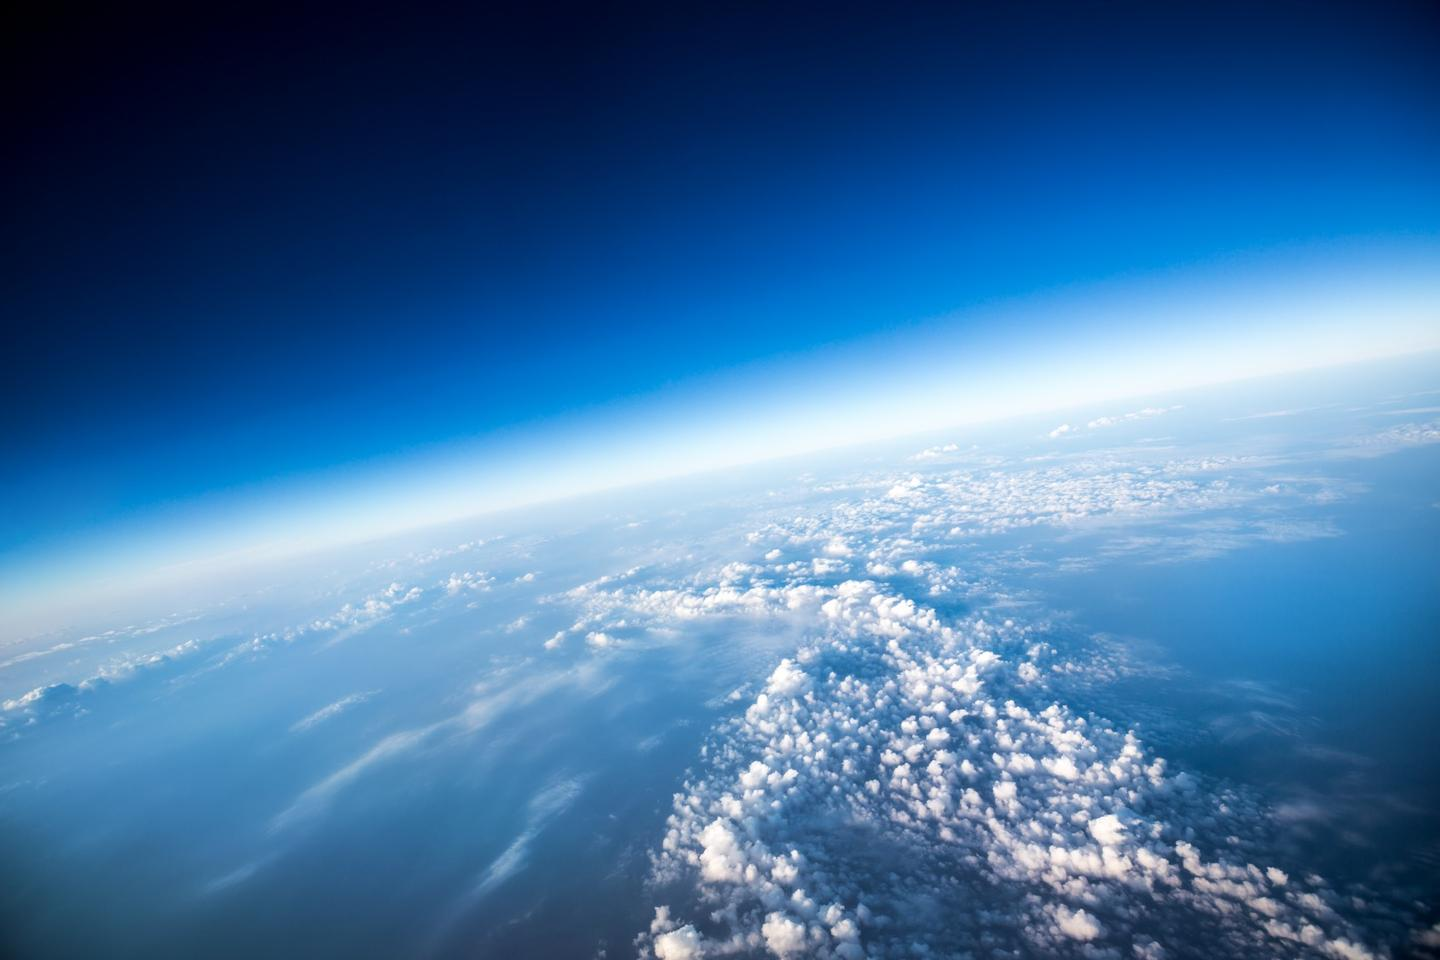 A long-term strategy to repair the Earth's ozone layer is starting to pay off